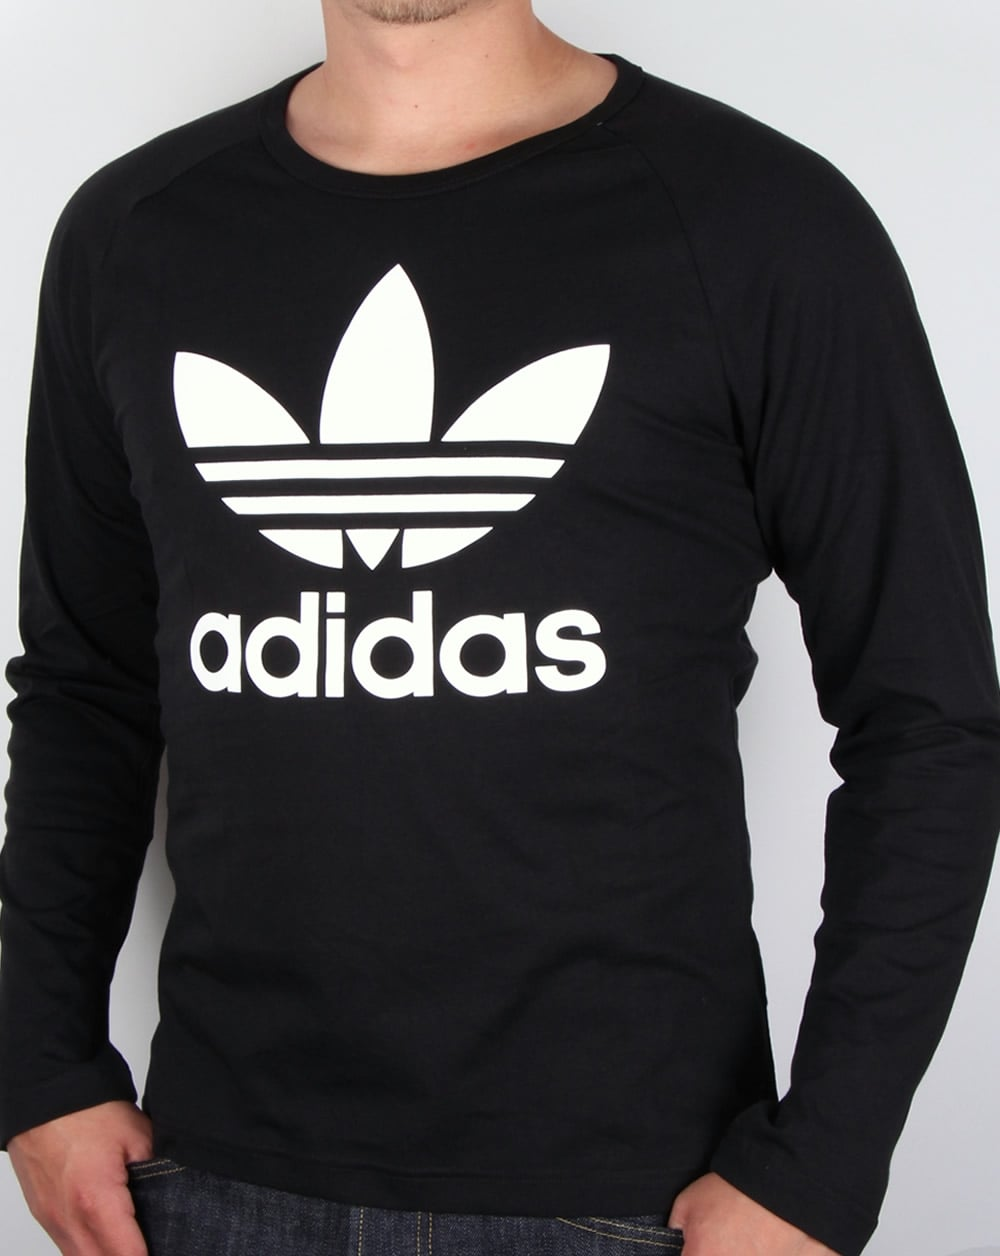 Cheap adidas black tee adidas boxing shoes adidas for Adidas long sleeve t shirt with trefoil logo